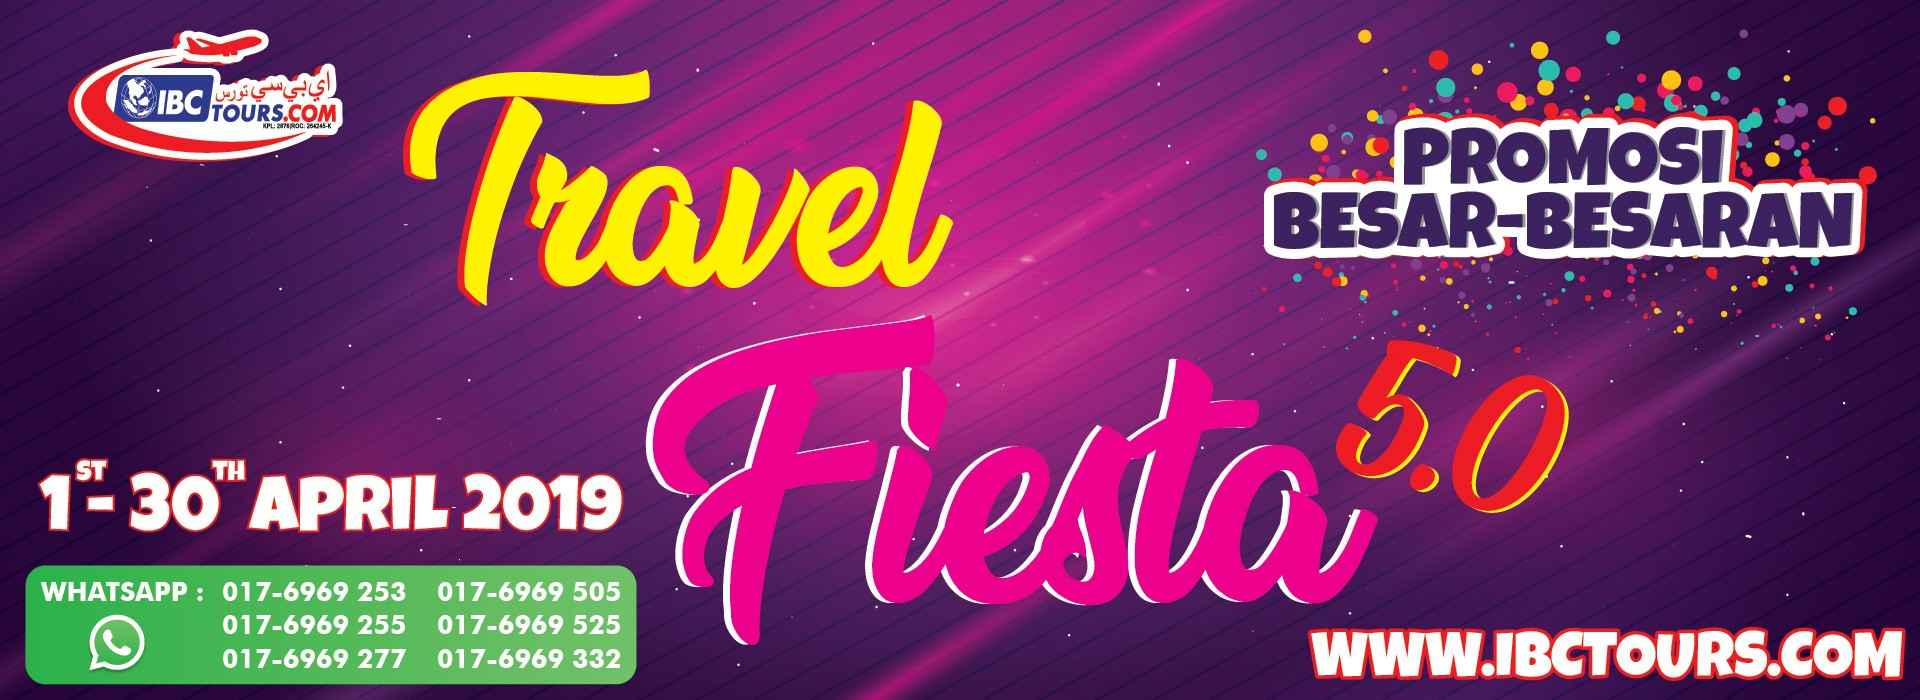 Travel fiesta